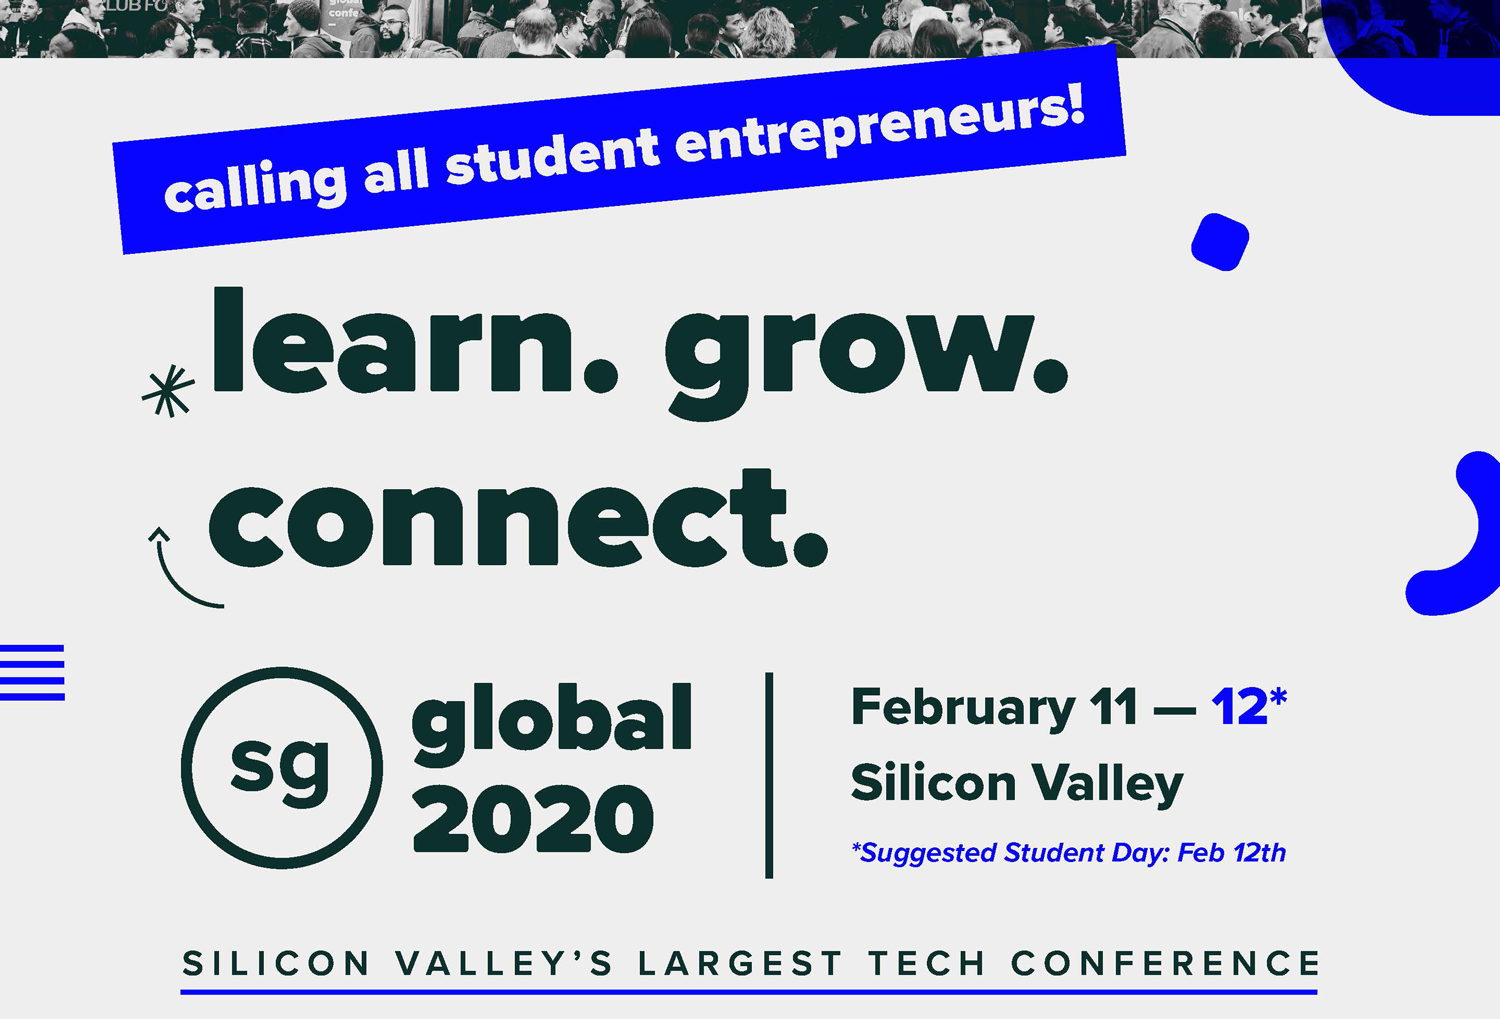 Calling all student entrepreneurs! Learn, grow, connect!